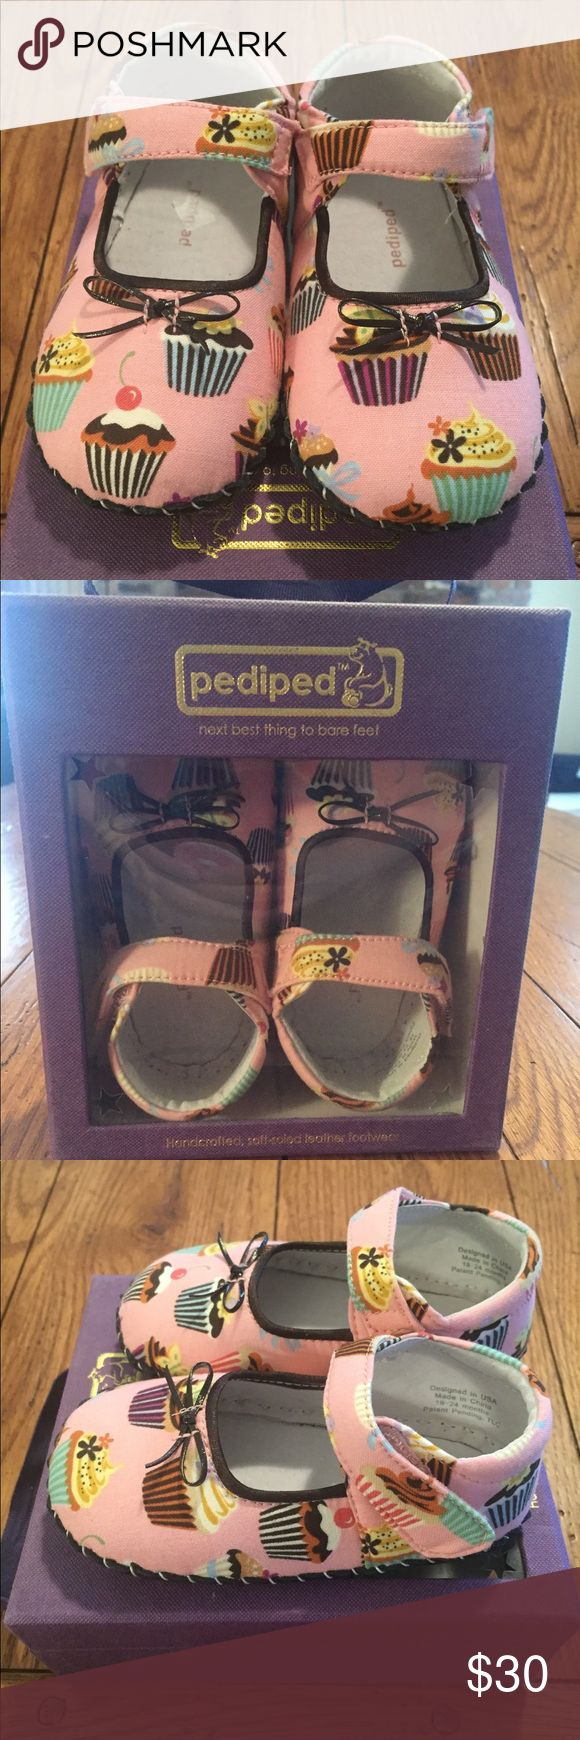 New in Box Pediped Morgan Cupcake Ballet Flats Sweet little pink cupcake flats from Pediped. They are size 18-24 months and new in box. Adorable bow on the toe. pediped Shoes Baby & Walker